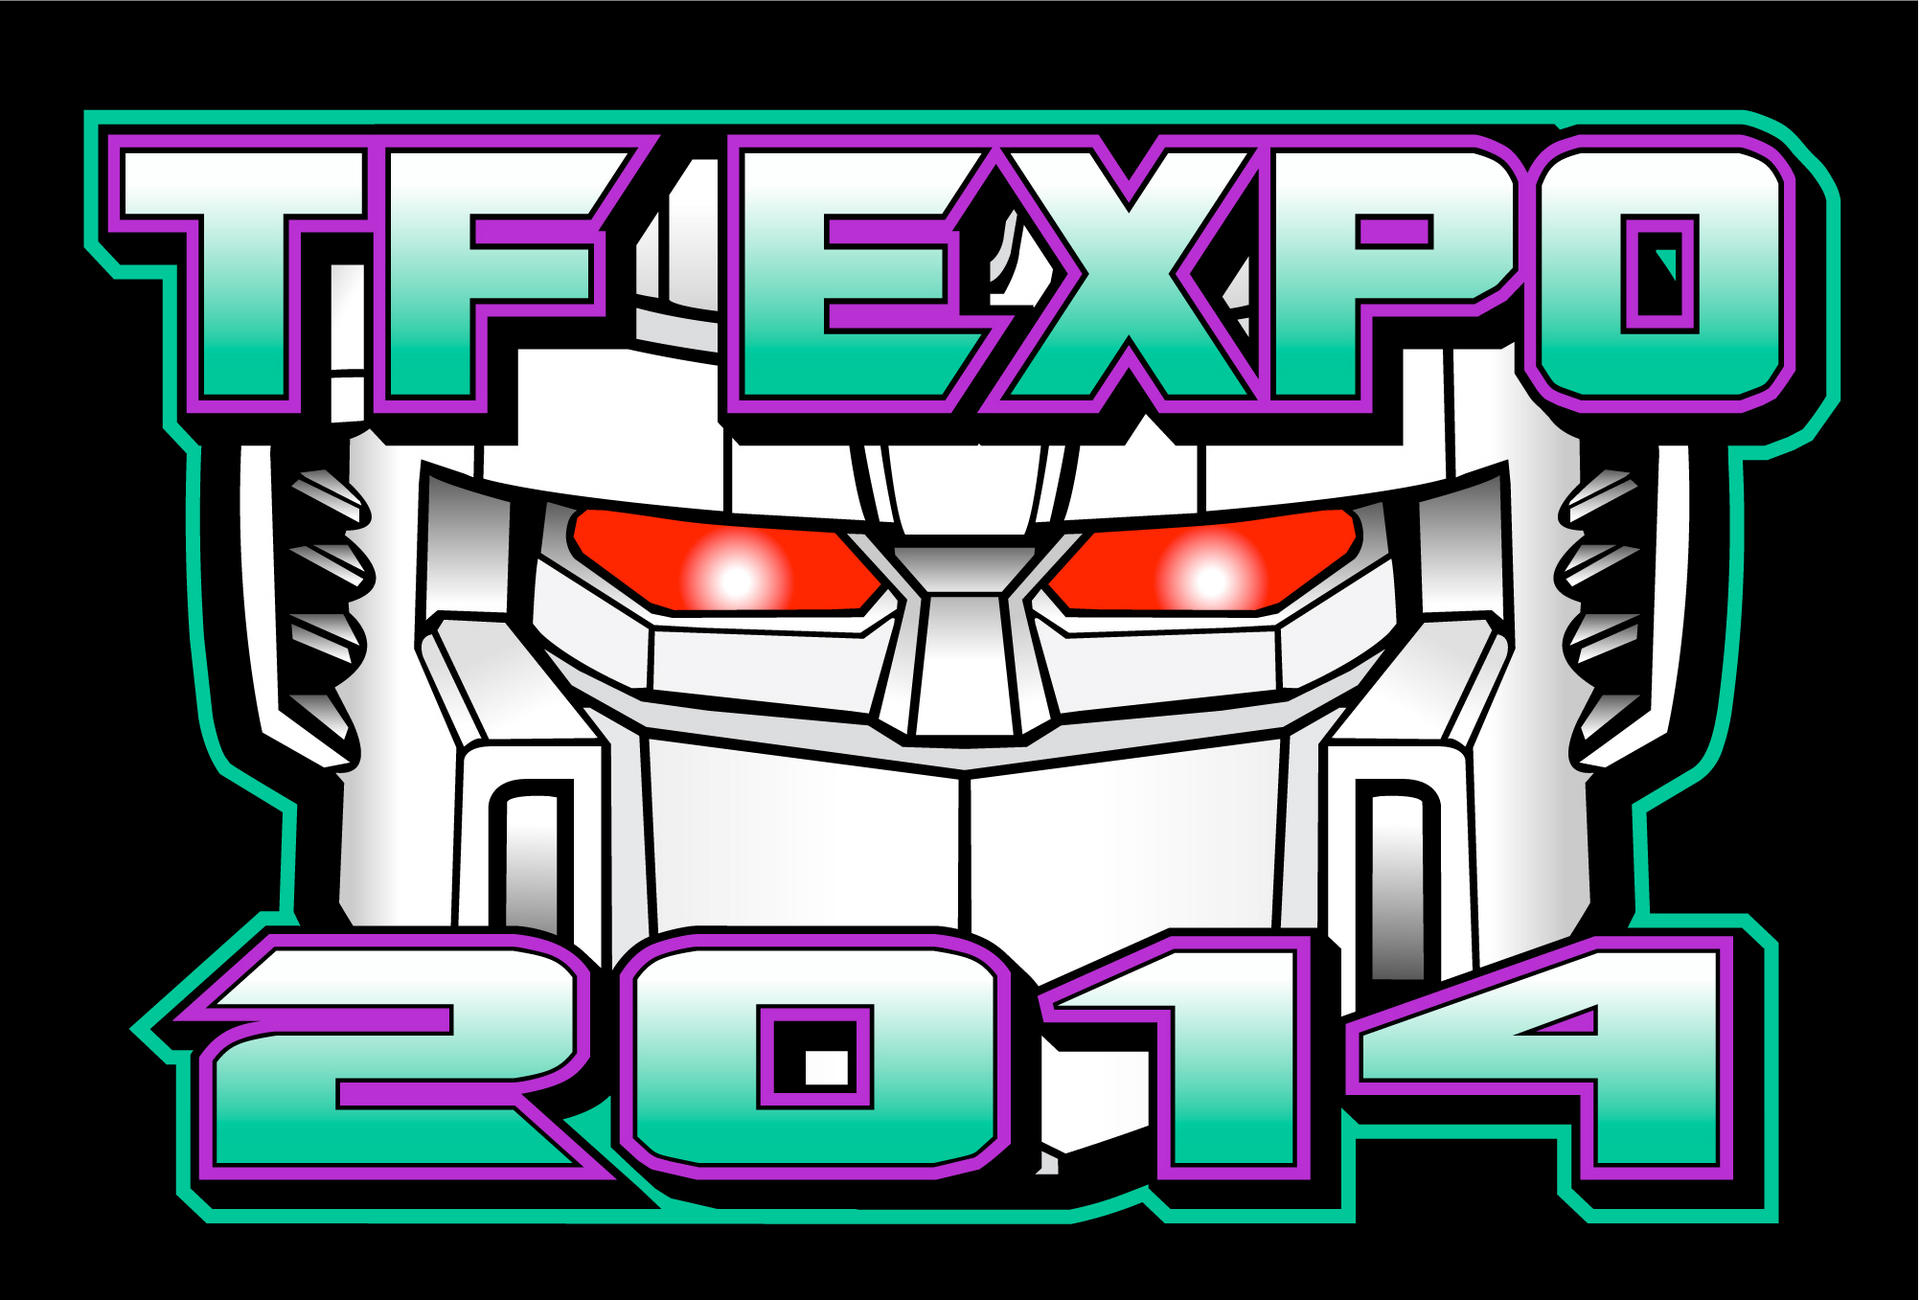 27452329d1405111187-tfexpo-2014-august-1st-3rd-wichita-kansas-neil-ross-sumalee-montano-2014-logo-2-